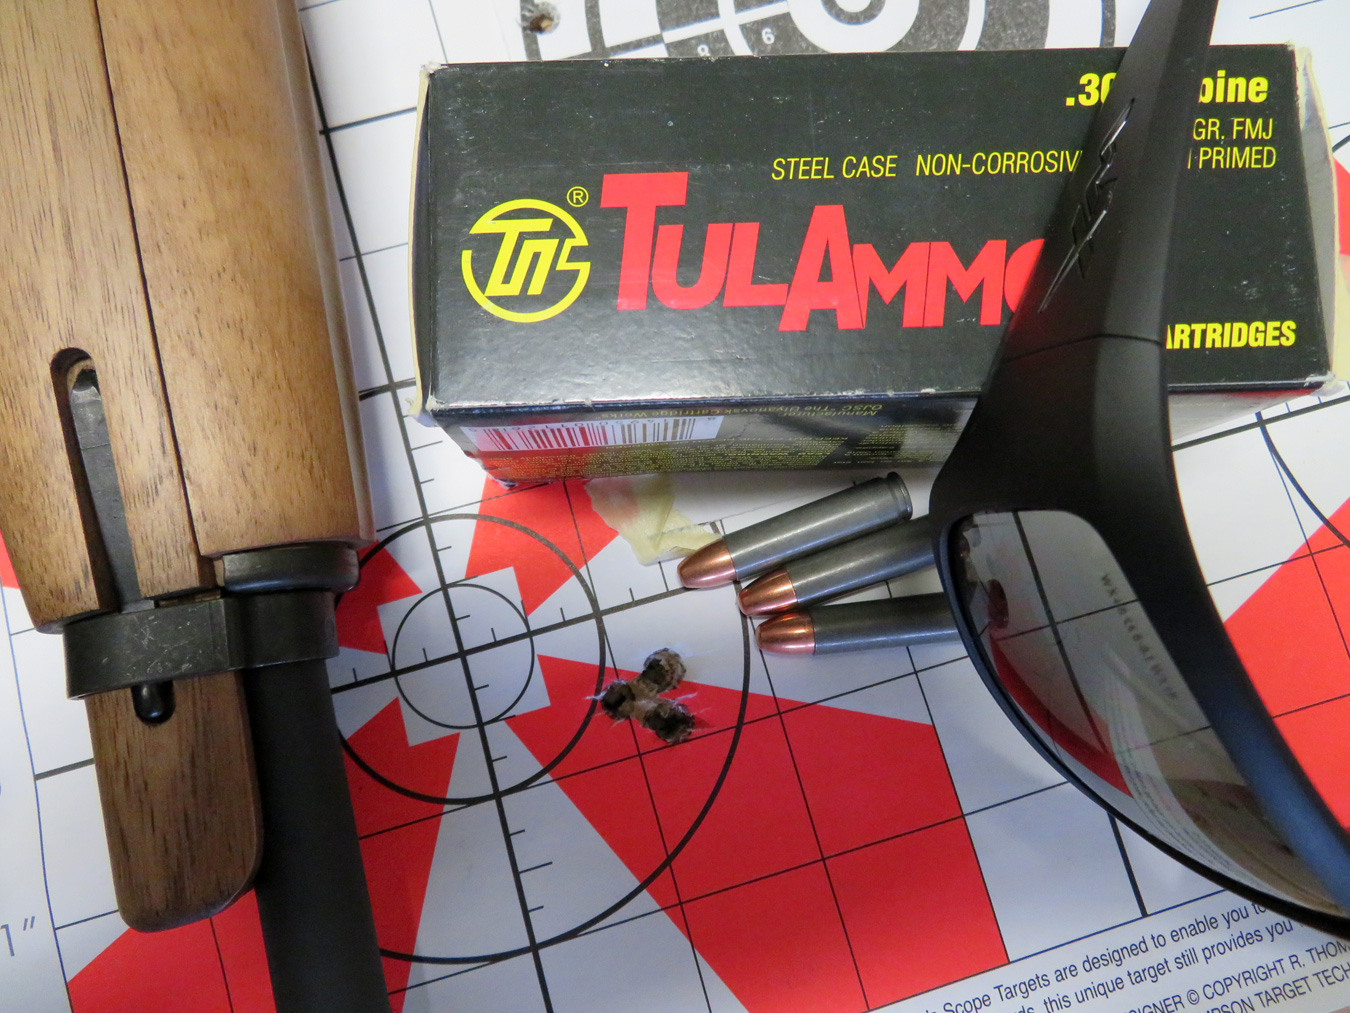 TulAmmo ammunition box and M1 rifle on a red and white paper target